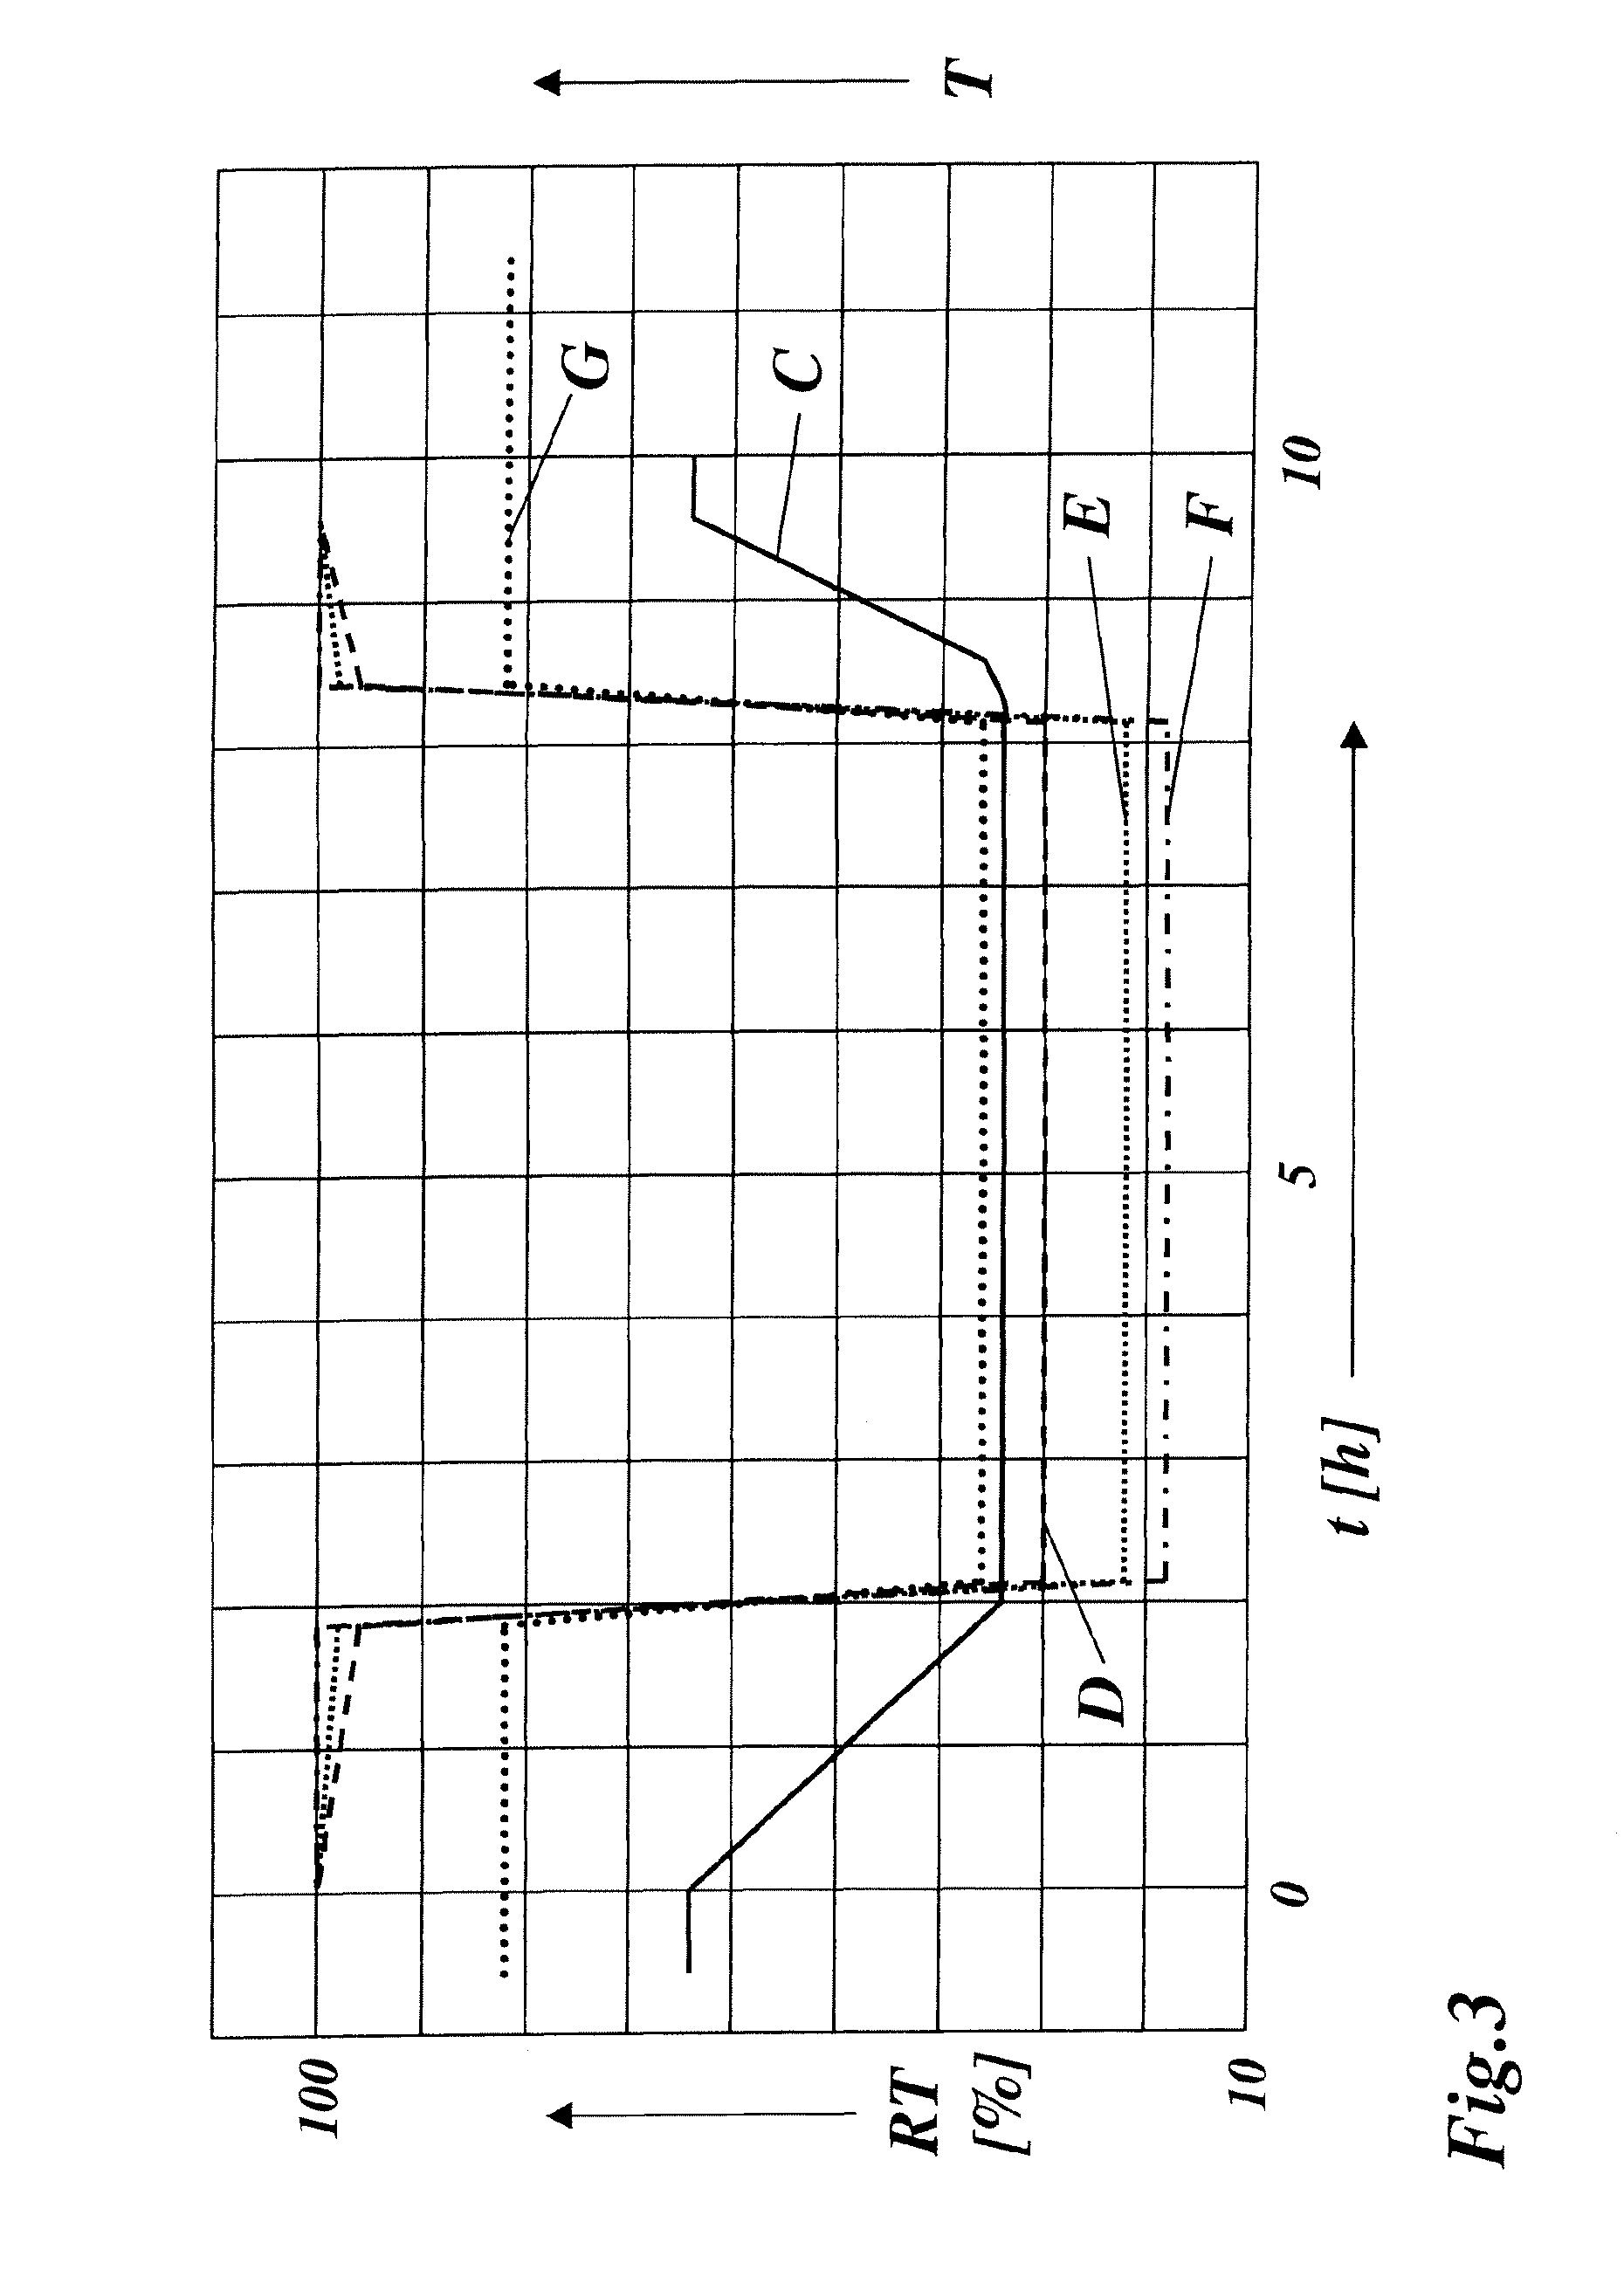 Patente US Method for operating a gas turbine plant